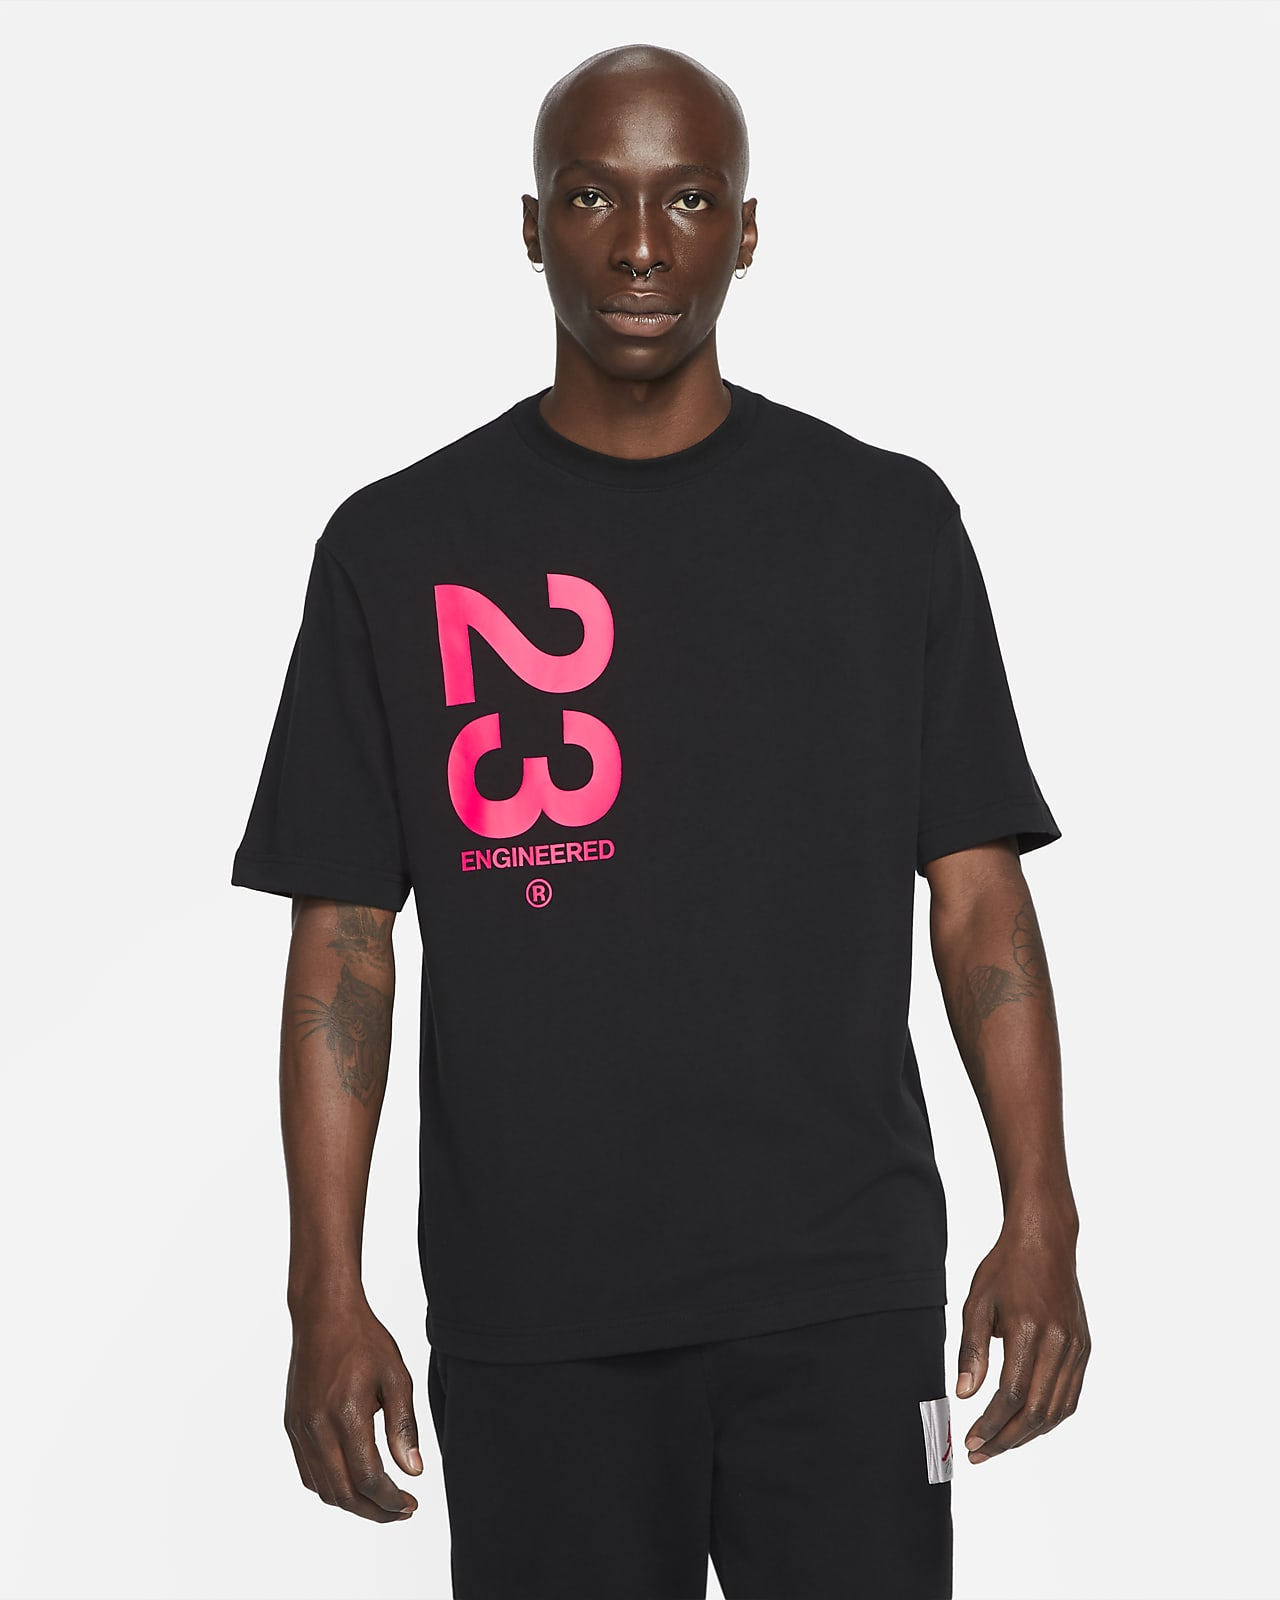 Playera de manga corta para hombre Jordan 23 Engineered